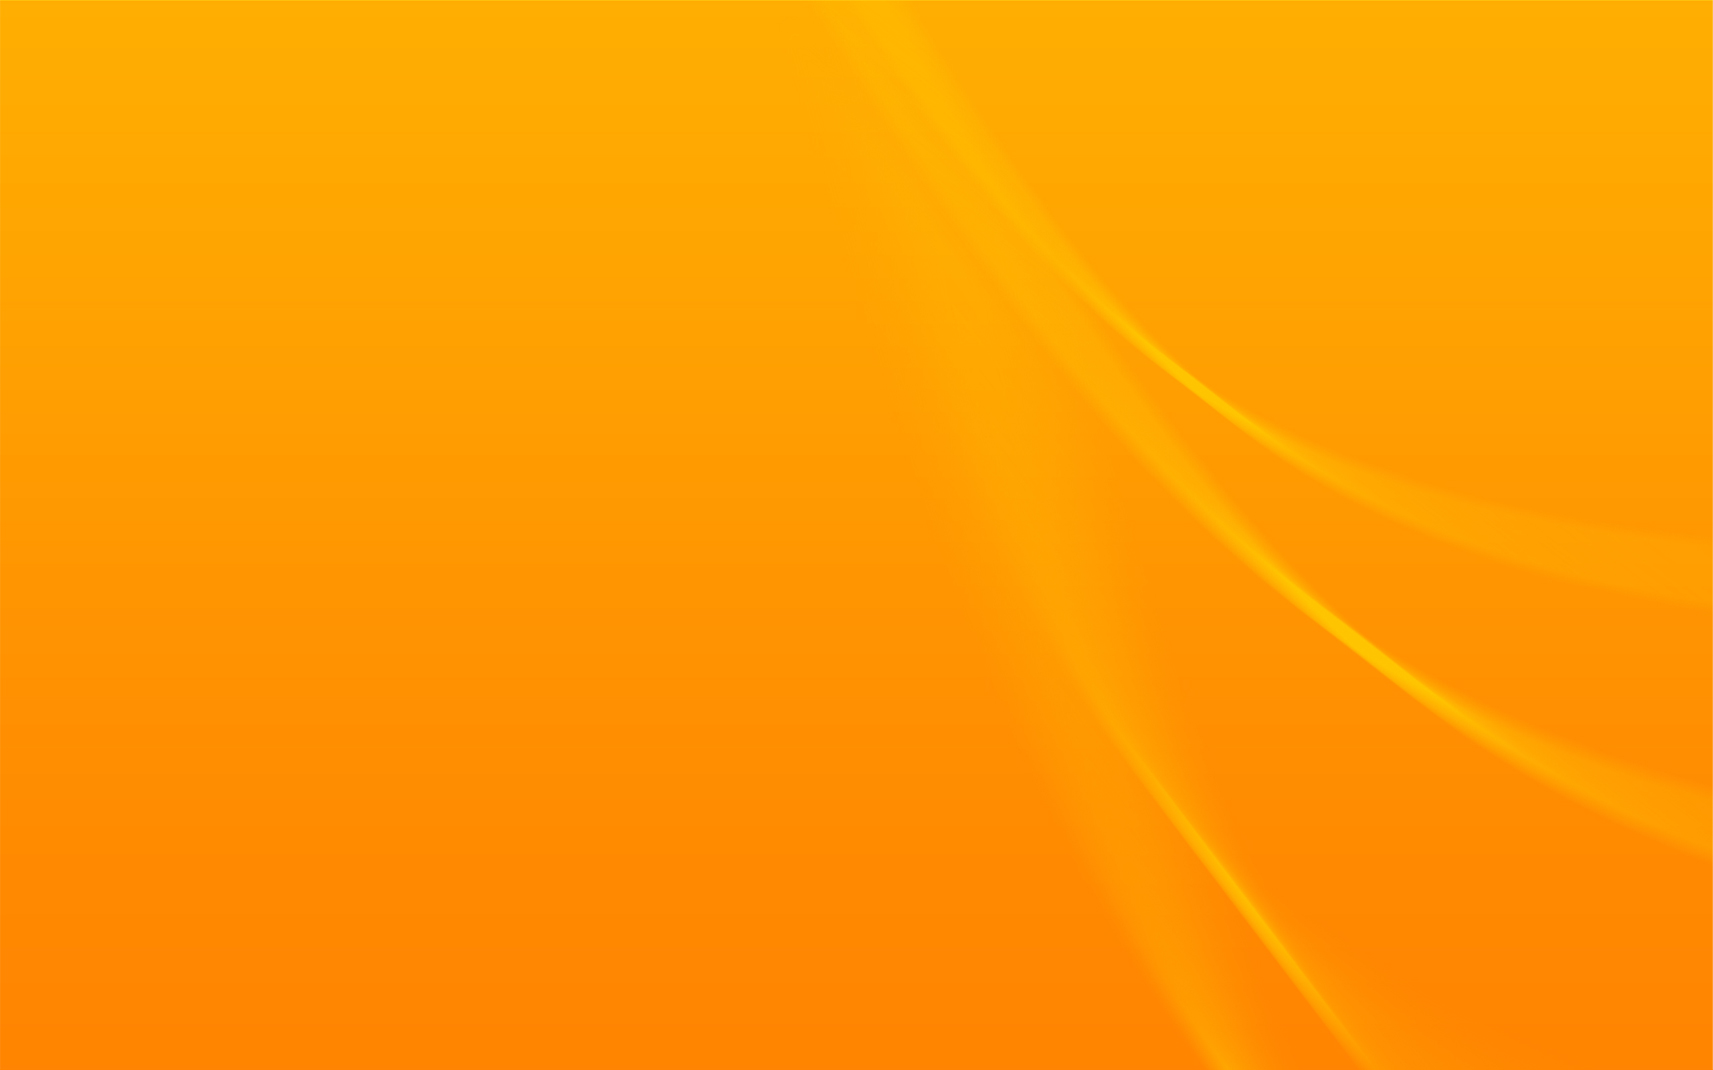 Cool Orange Backgrounds images 1713x1070